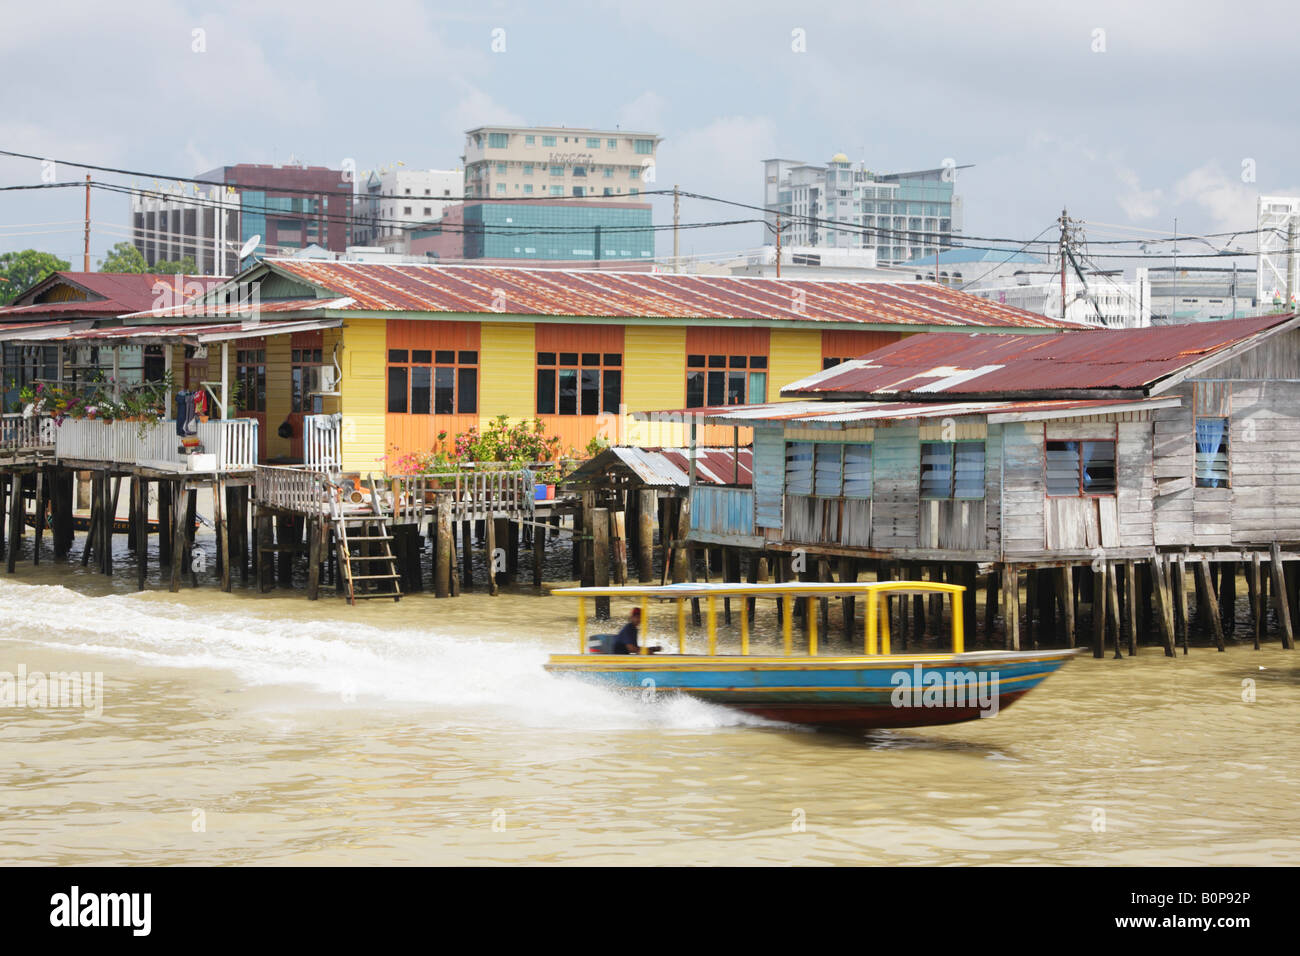 Boat Speeding Through Stilt Village Of Kampung Ayer, Brunei - Stock Image